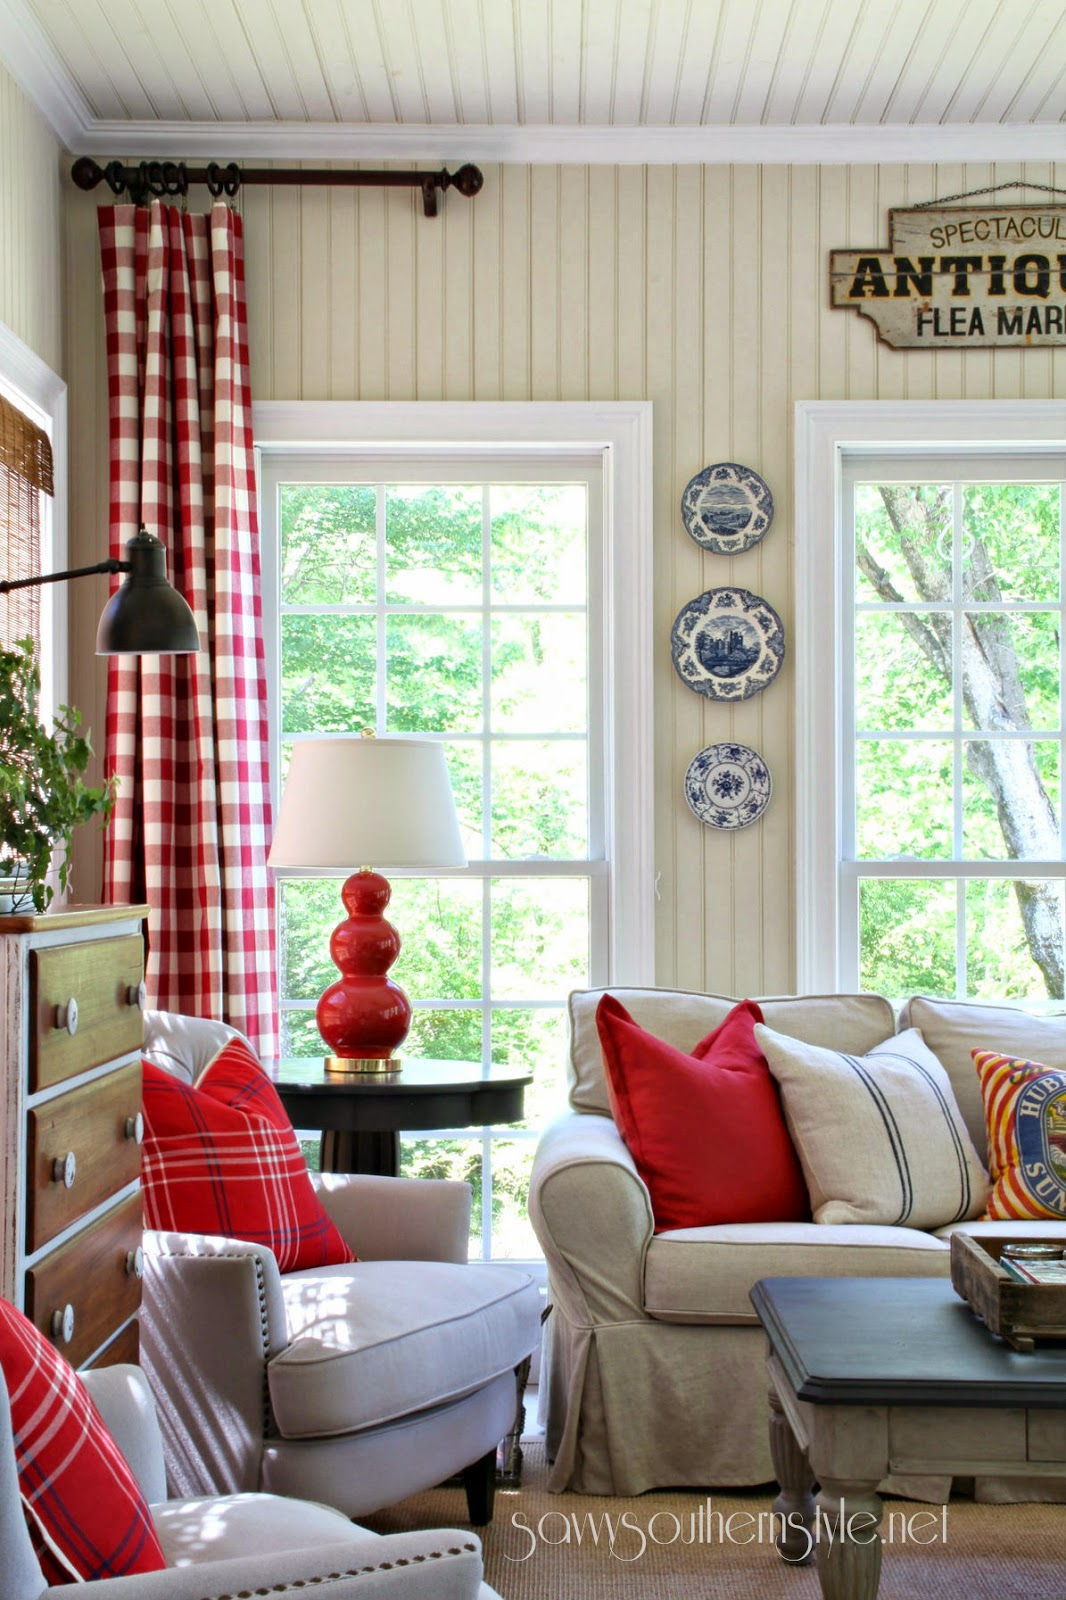 Savvy Southern Style The Sun Room Spring 2014